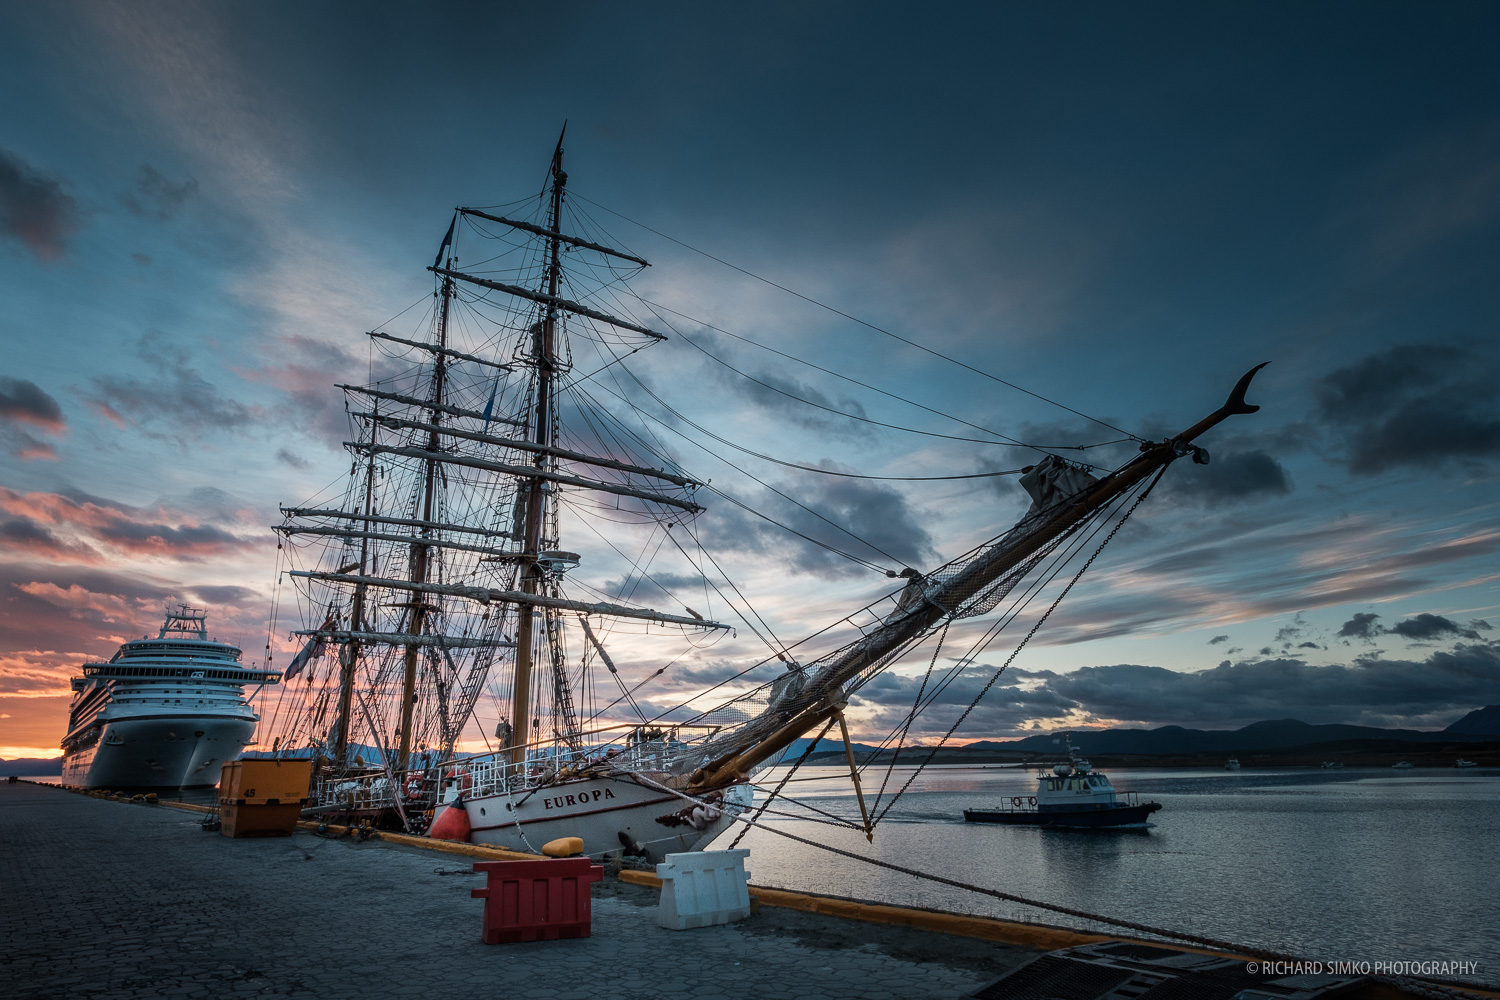 Sunrise in Ushuaia port. Europa woke up to a new day, ready to set the sail for Antarctica.